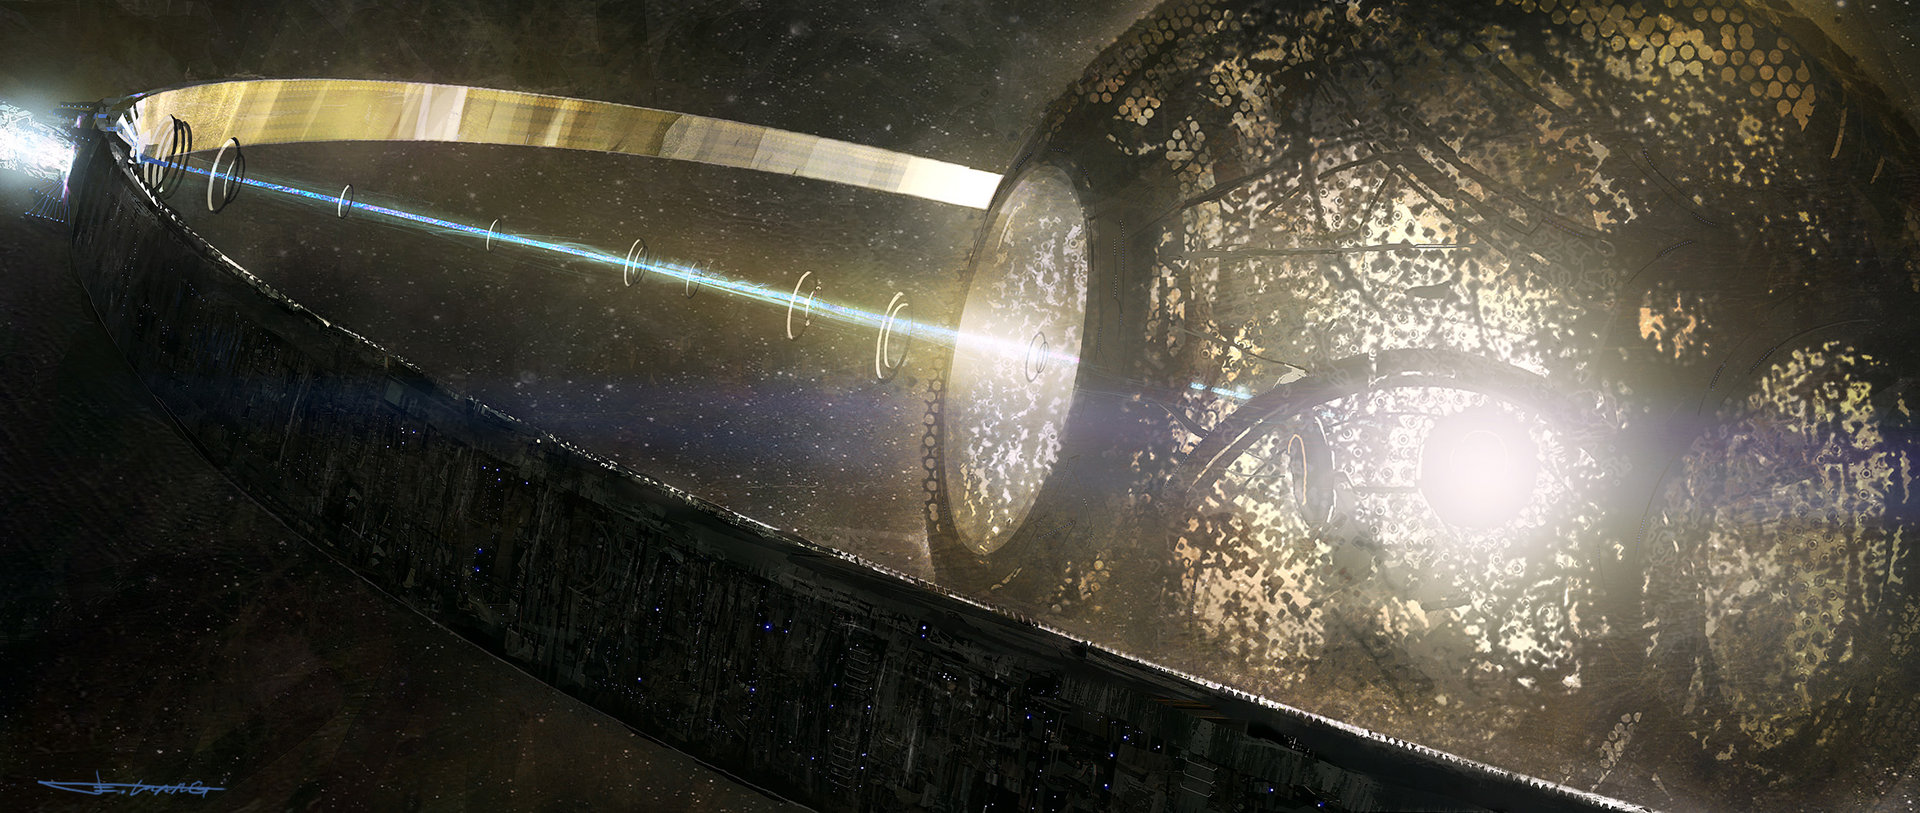 Alien Megastructure Discovered Around A Far Off Star